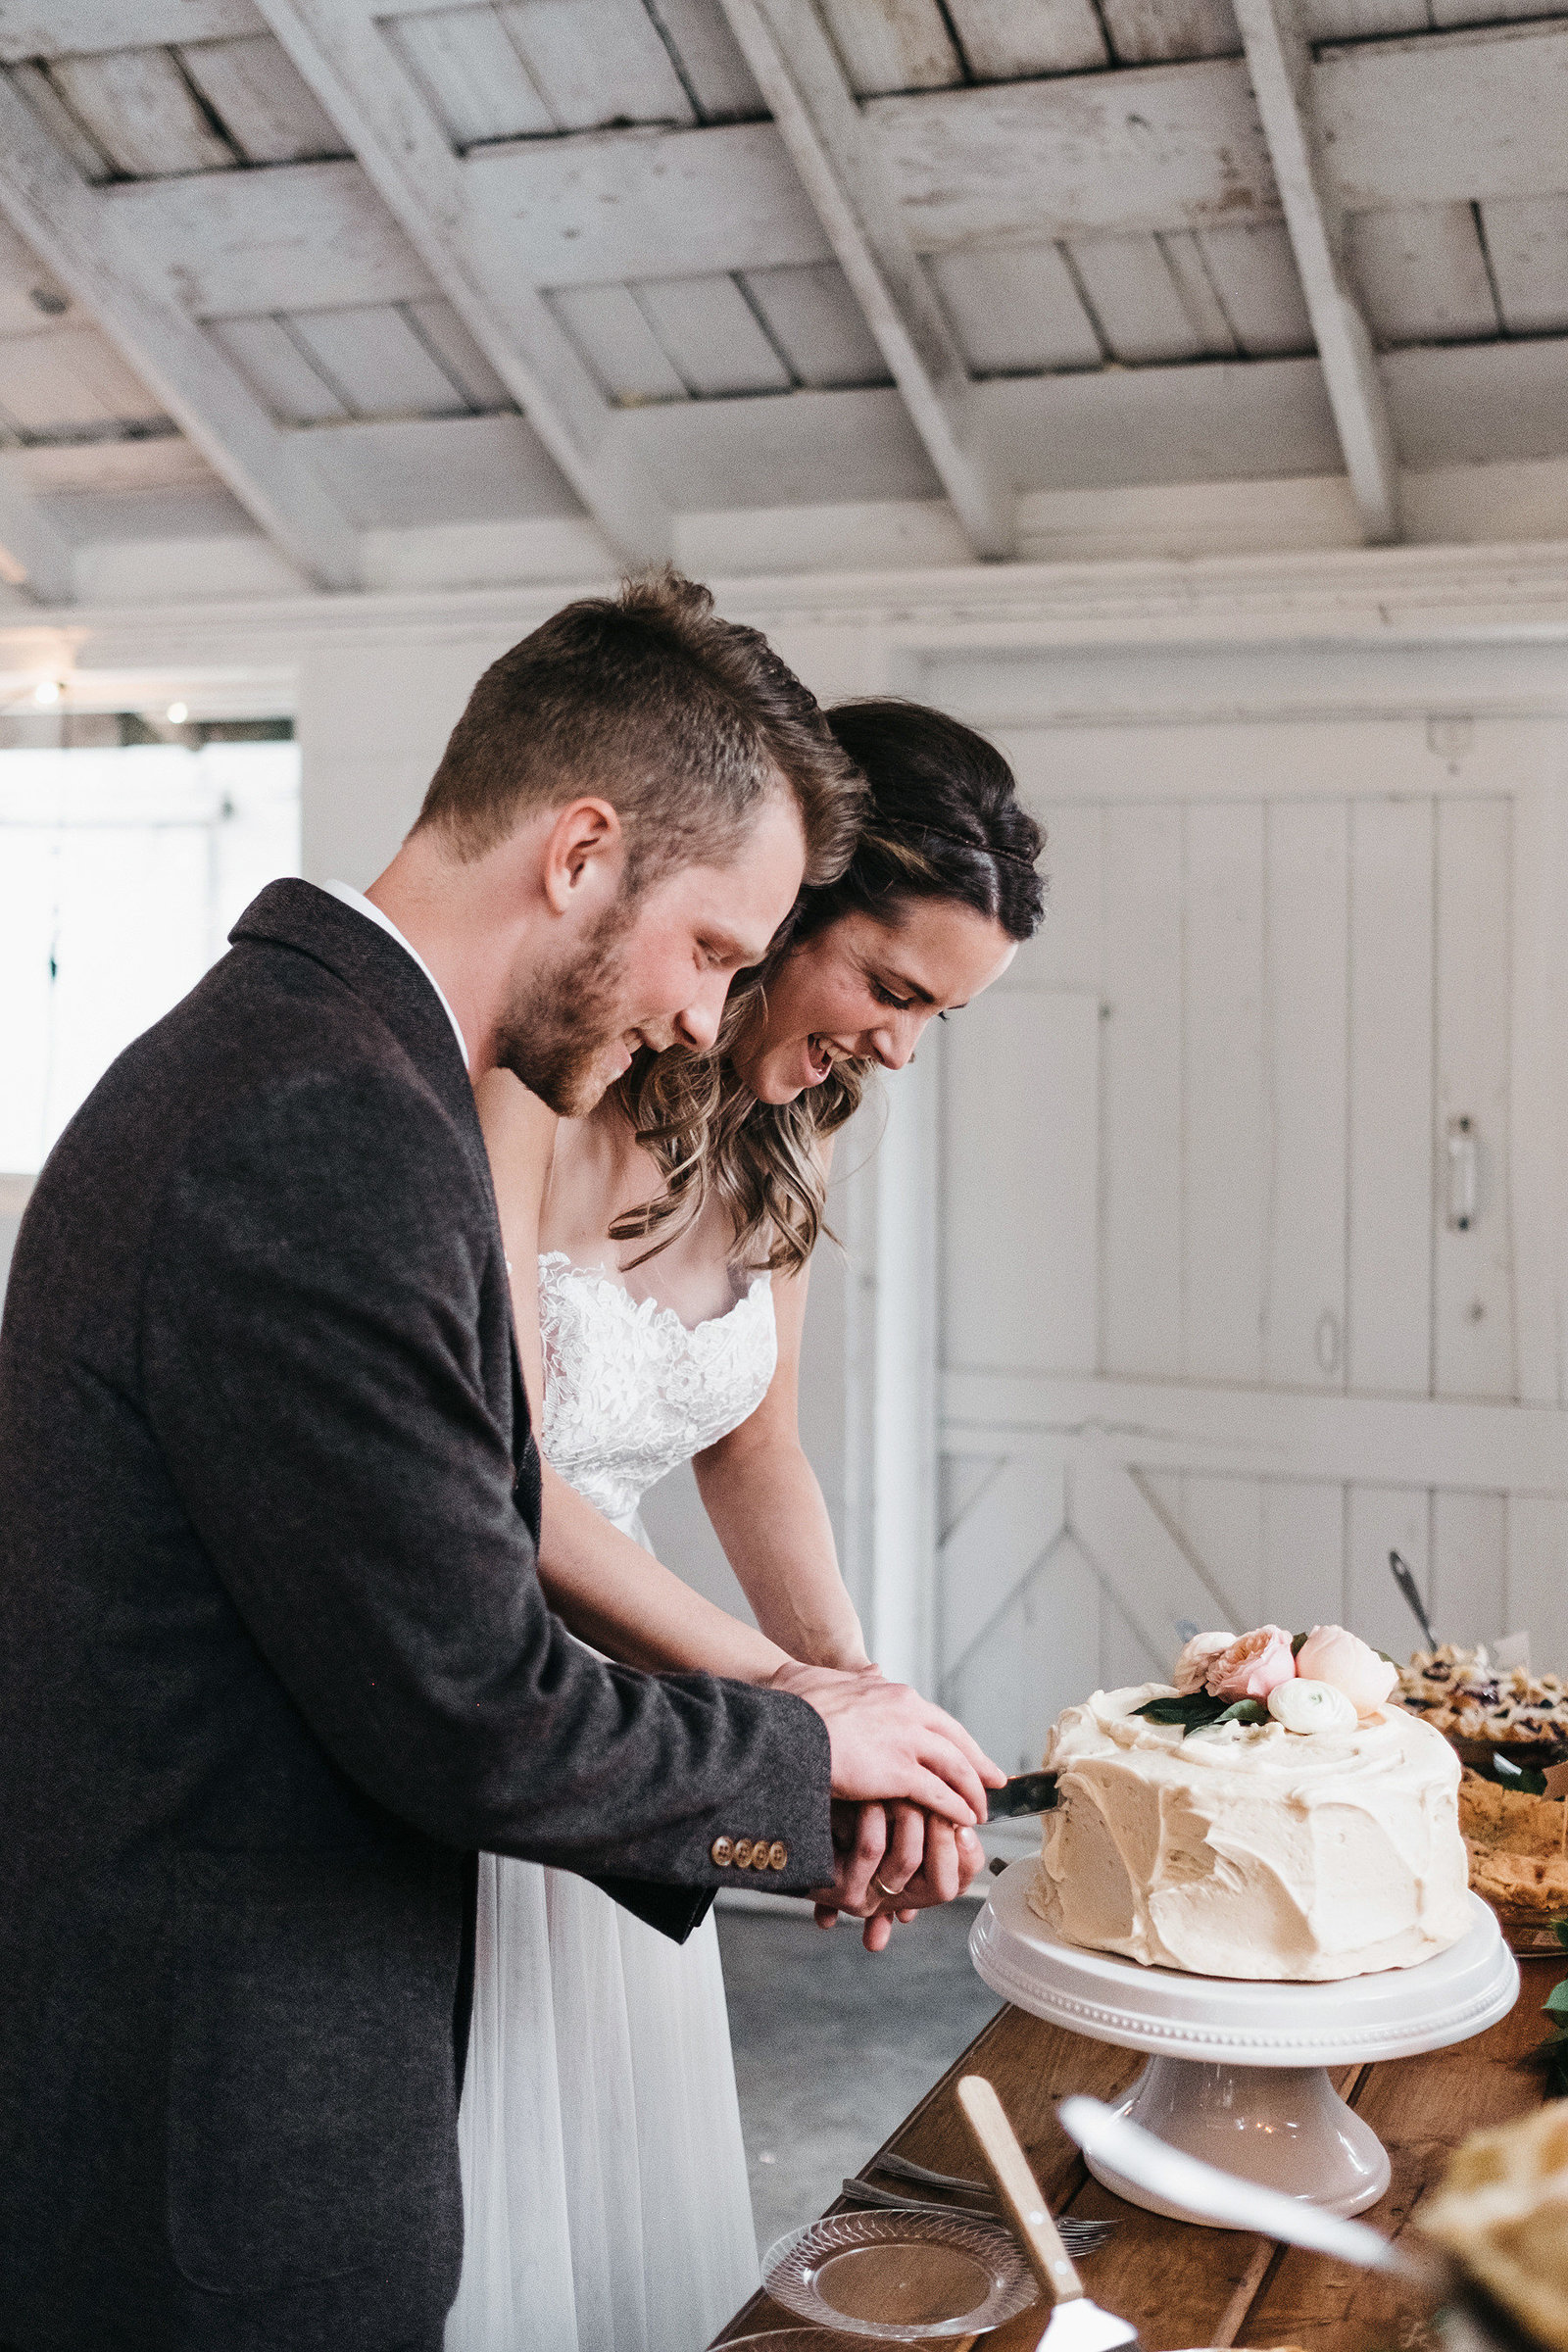 athena-and-camron-seattle-wedding-photographer-dairyland-snohomish-rustic-barn-wedding-flowers-styling-inspiration-lauren-madison-73